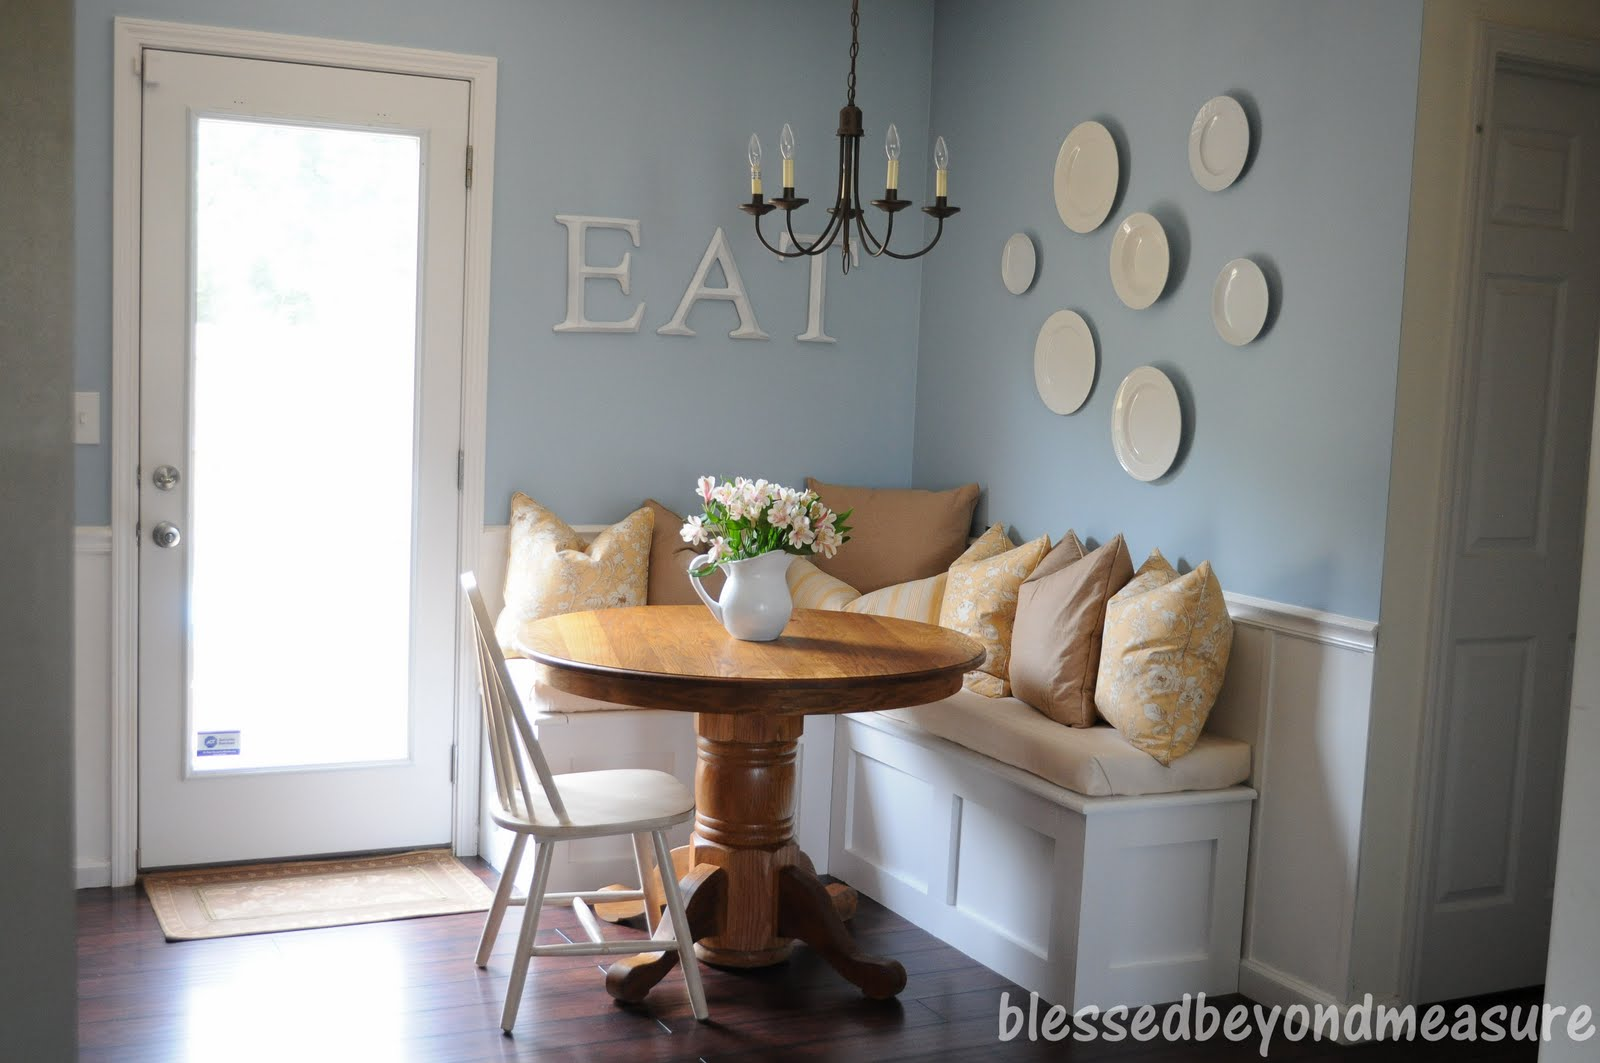 Blessed Beyond Measure: Our New Banquette Seating